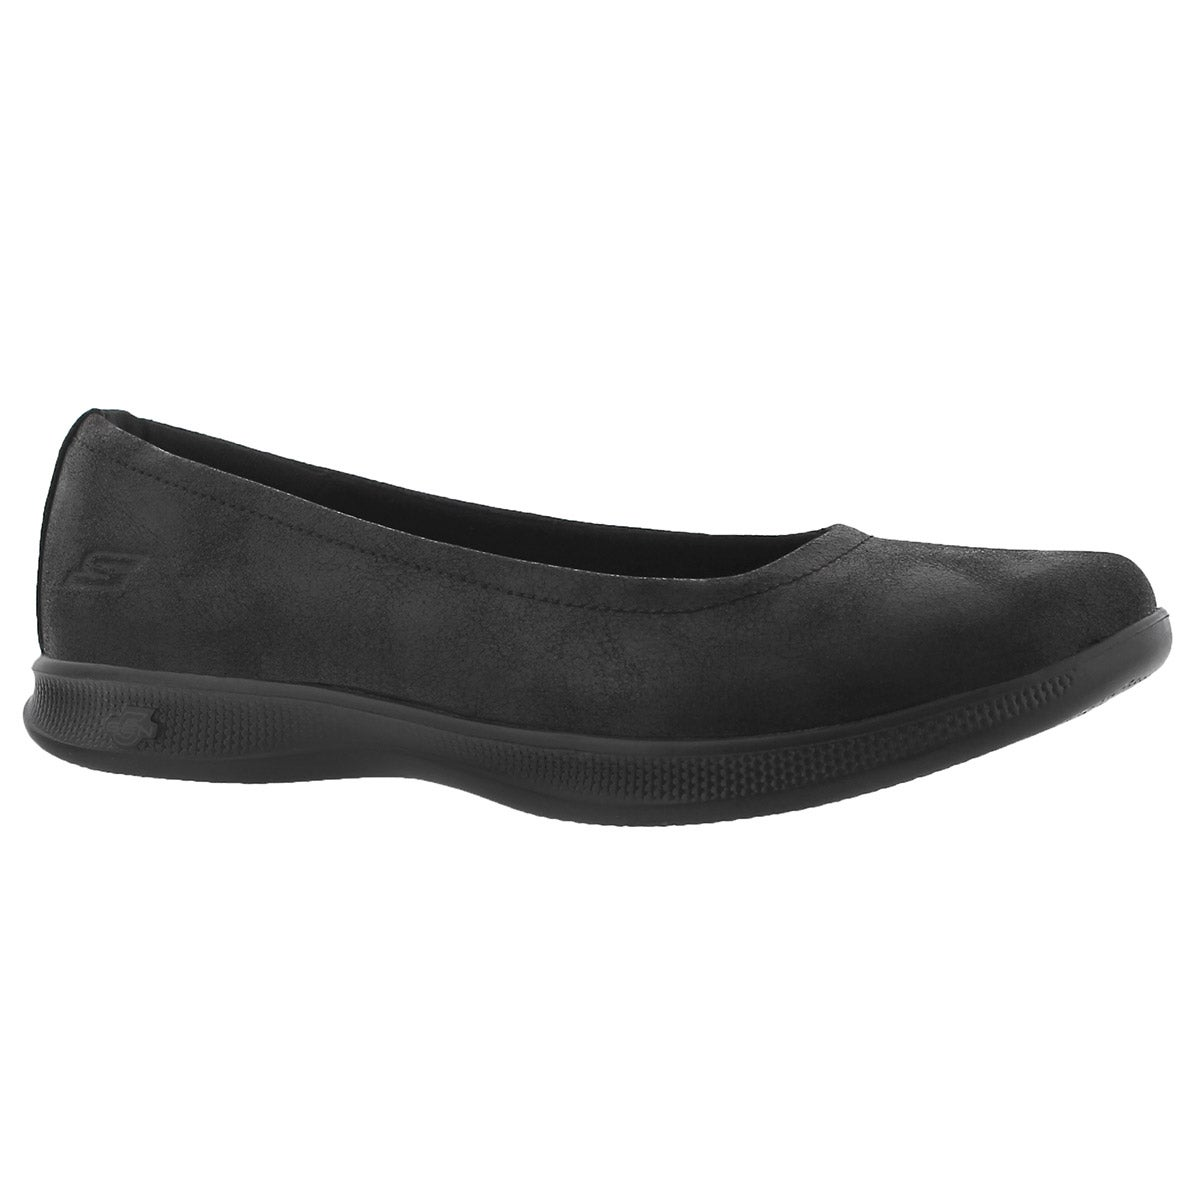 Women's GOstep LITE black casual flats